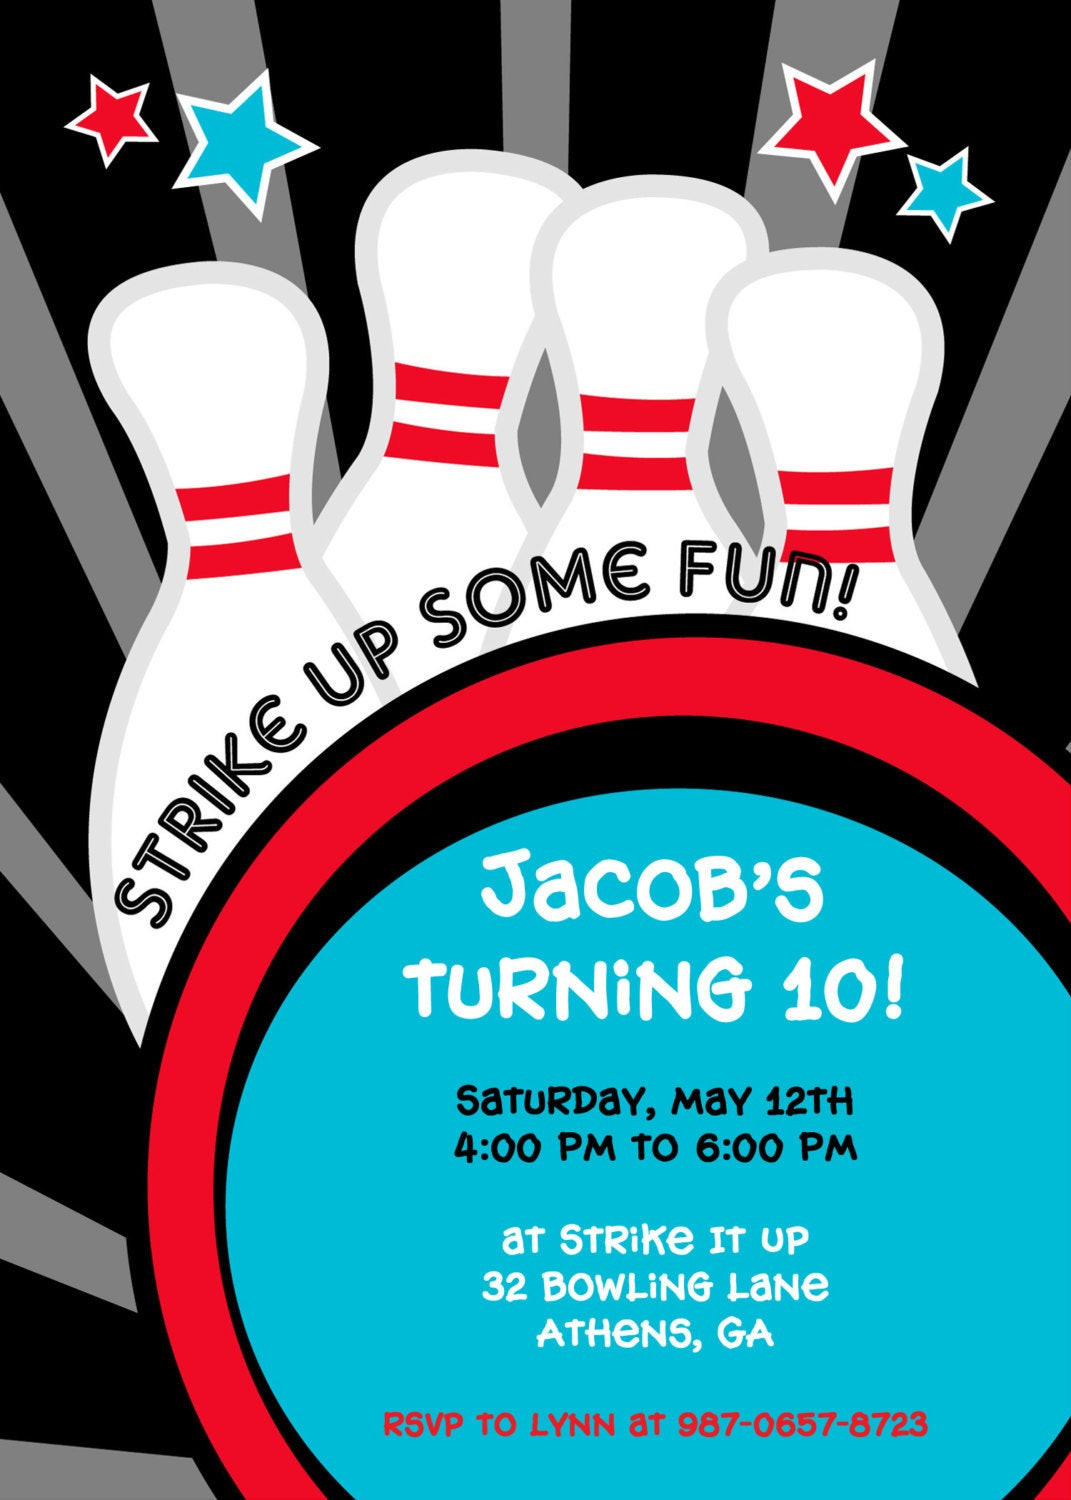 Best ideas about Bowling Birthday Invitations . Save or Pin Strike it up Bowling Party Invitation Now.